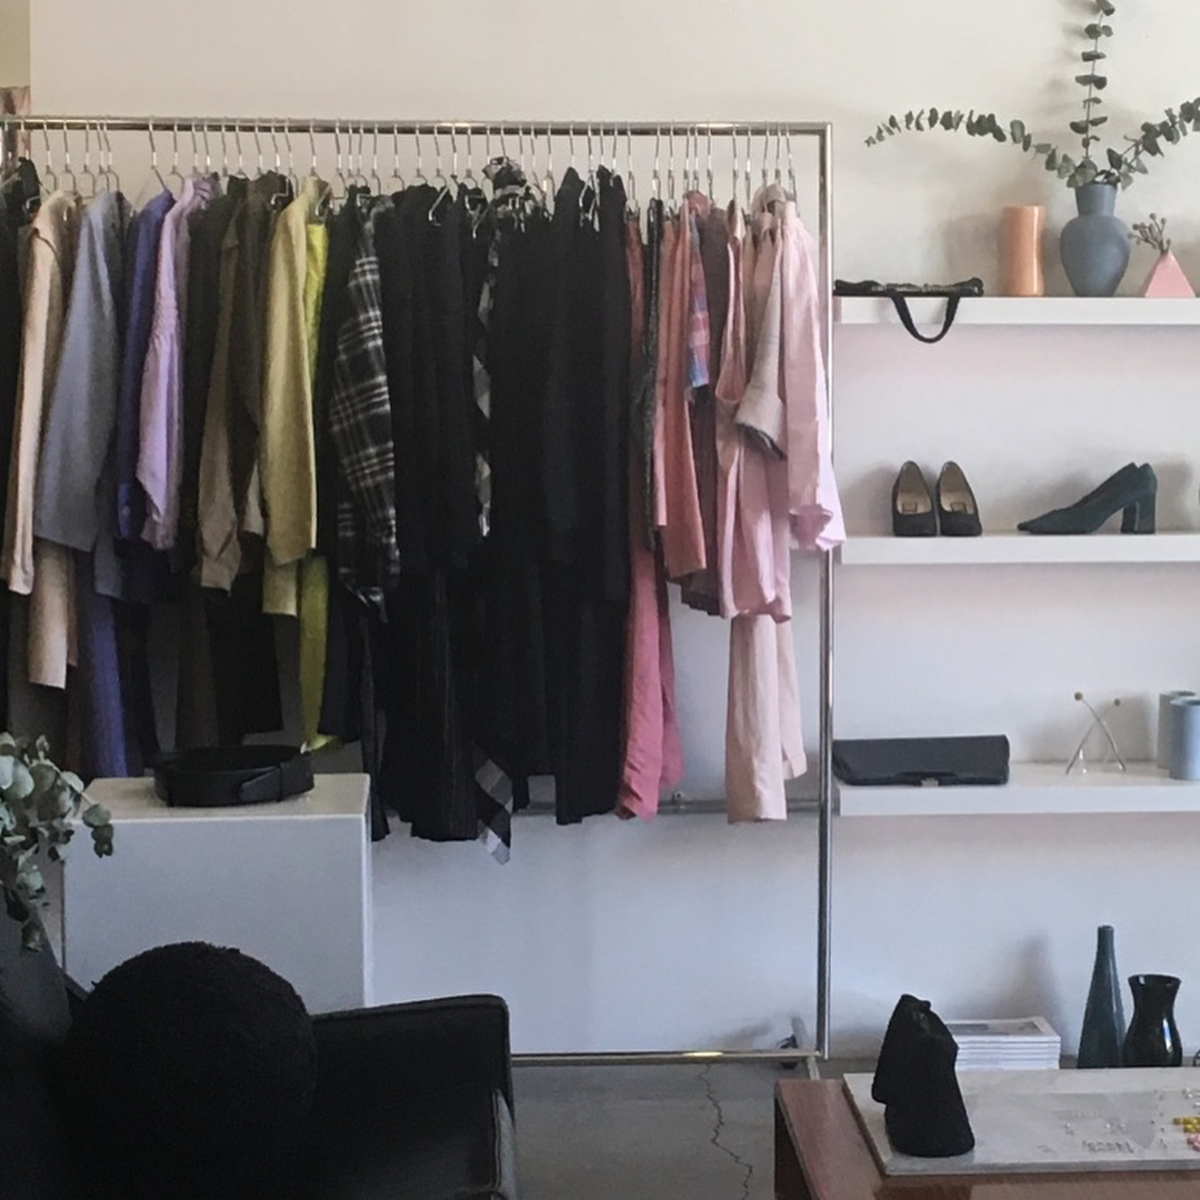 The Break vintage store in Brooklyn, New York. Photo: @hannah.richtman/Instagram